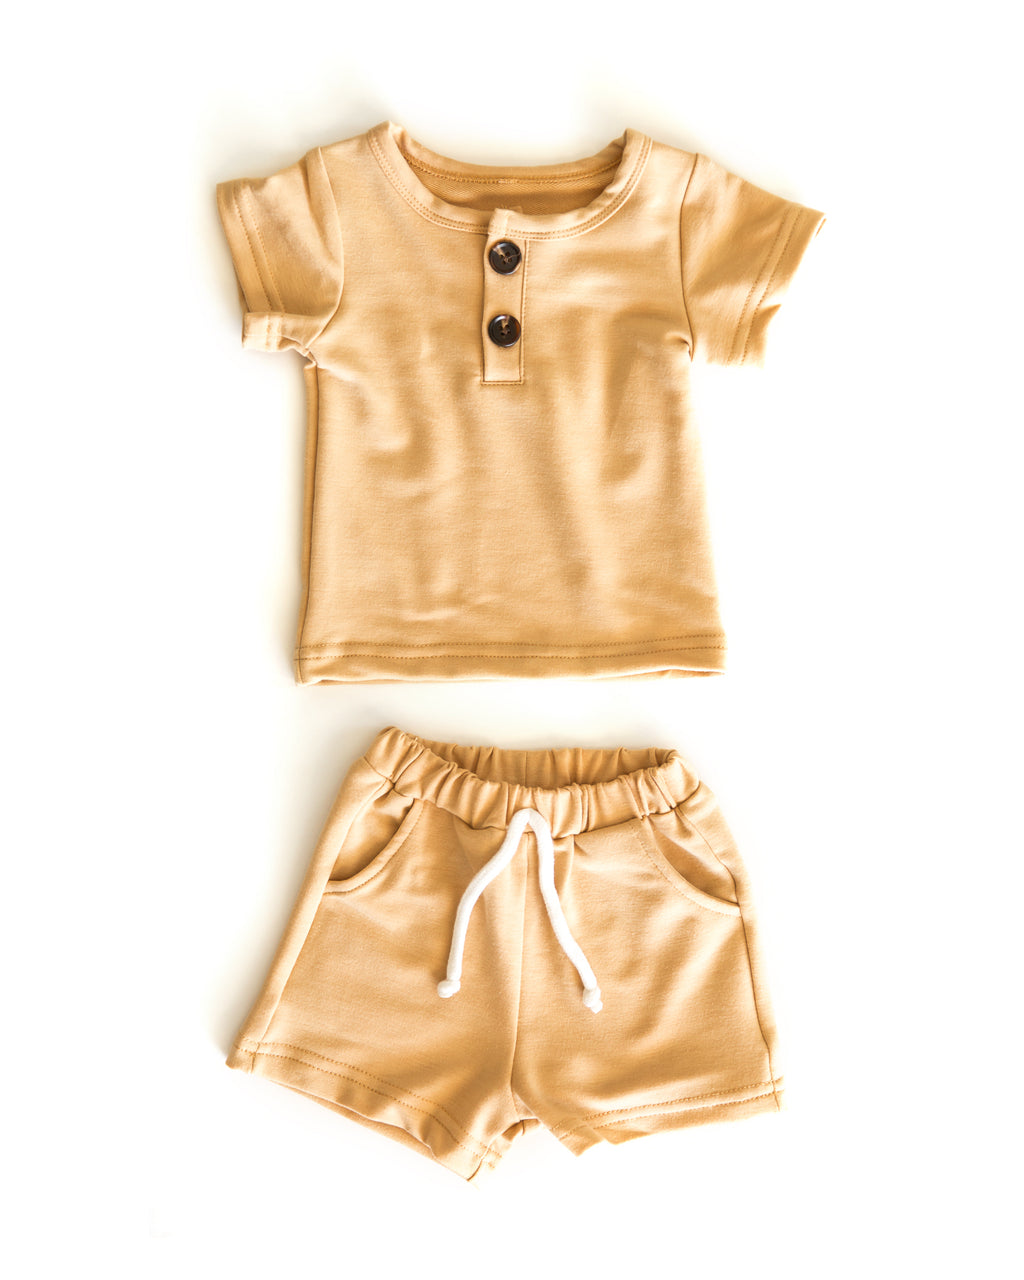 Ashton Cozies in Butterscotch - Reverie Threads